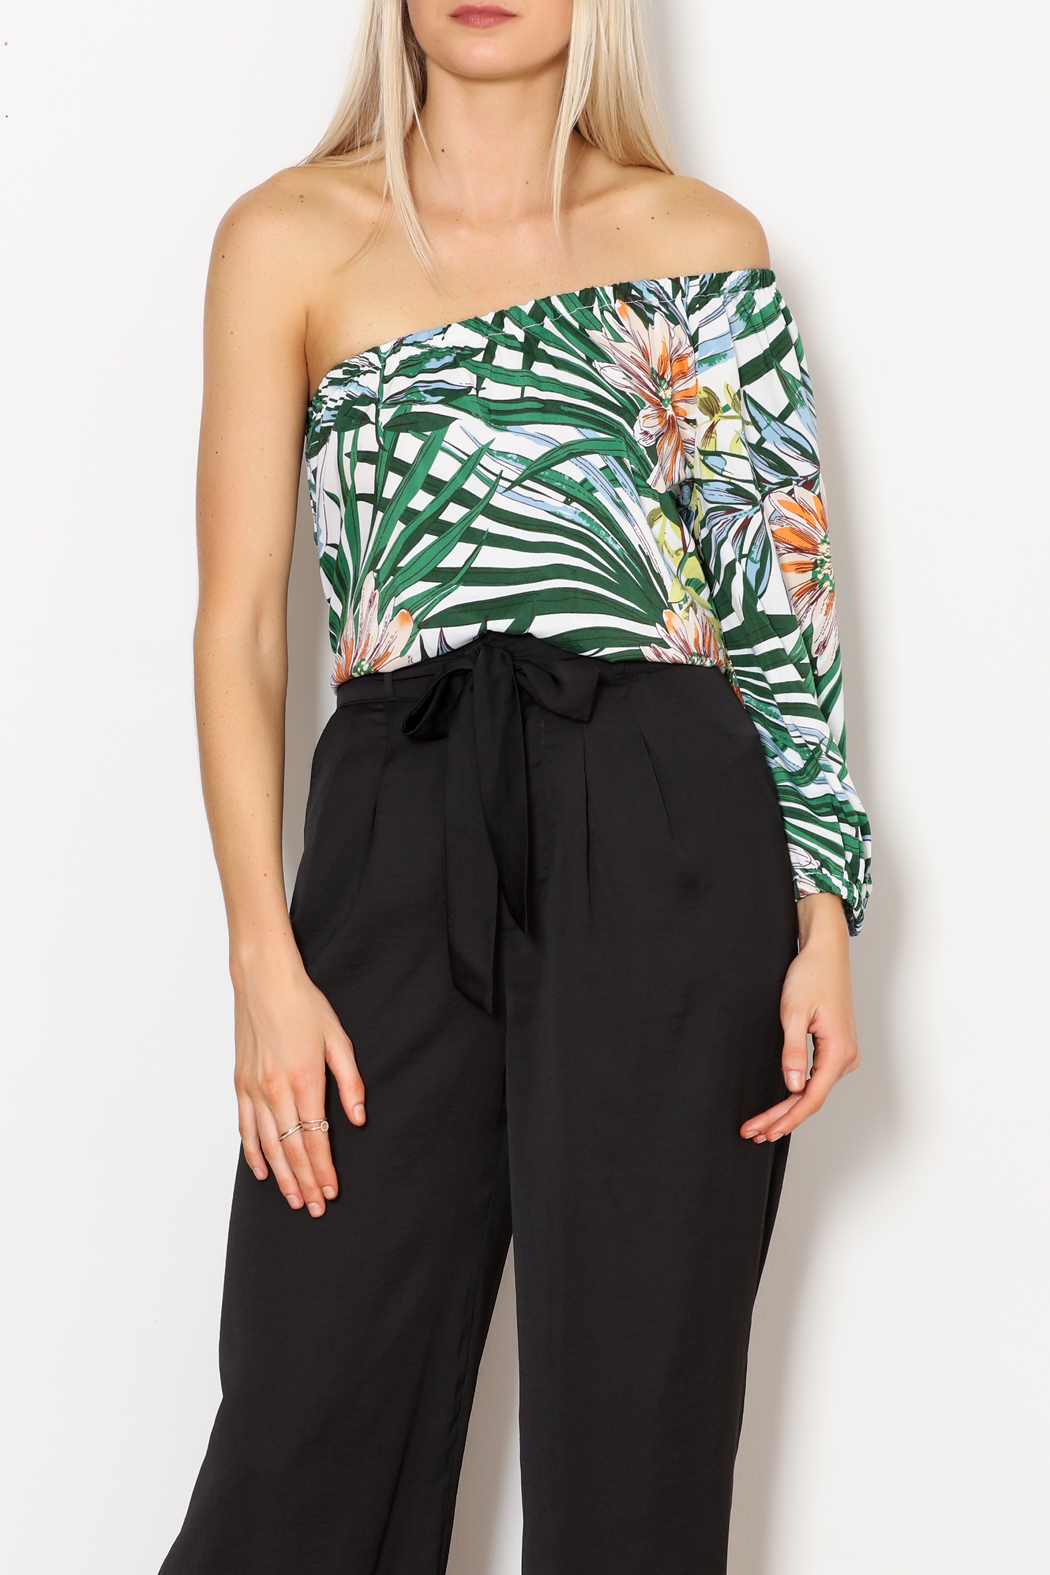 lucca couture Palm Print Top - Main Image